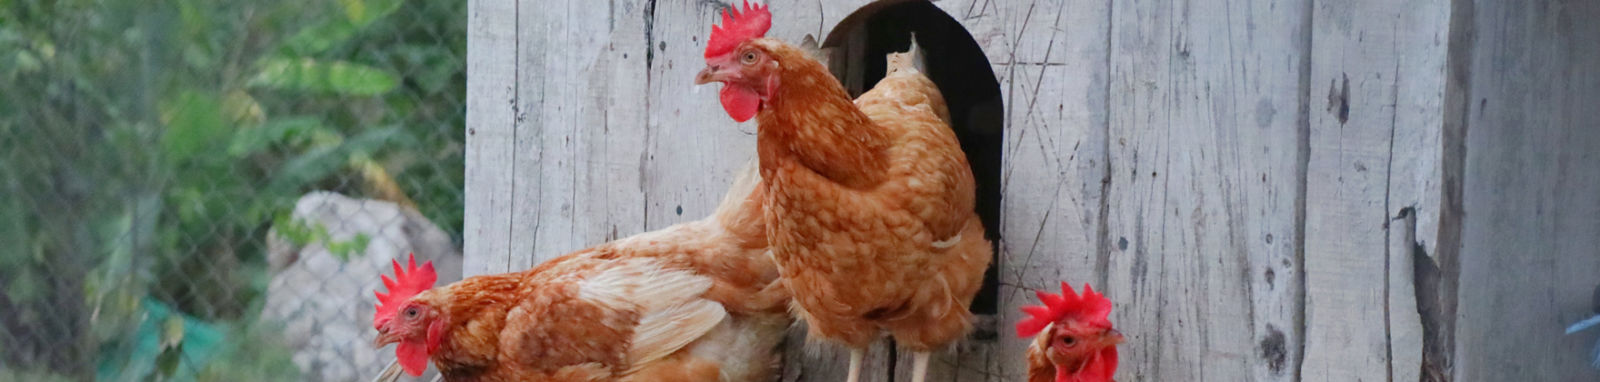 hens exiting a chicken coop